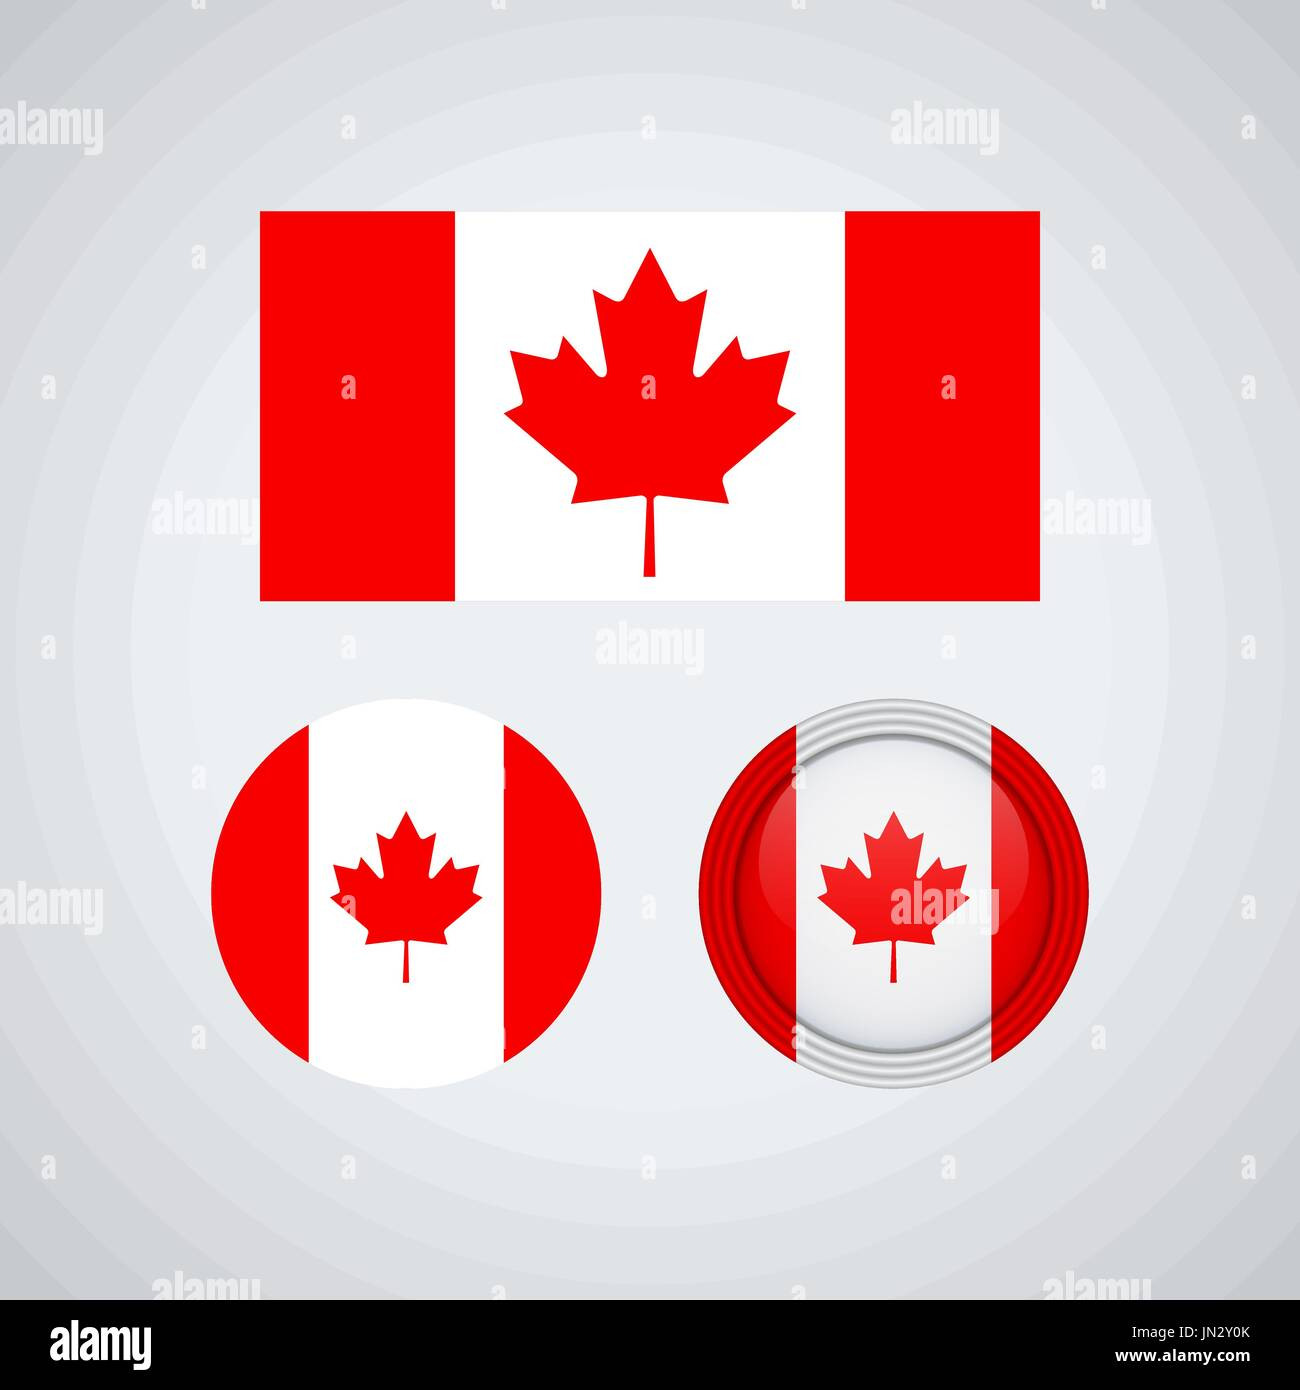 Flag Design Canadian Set Isolated Template For Your Designs Vector Illustration